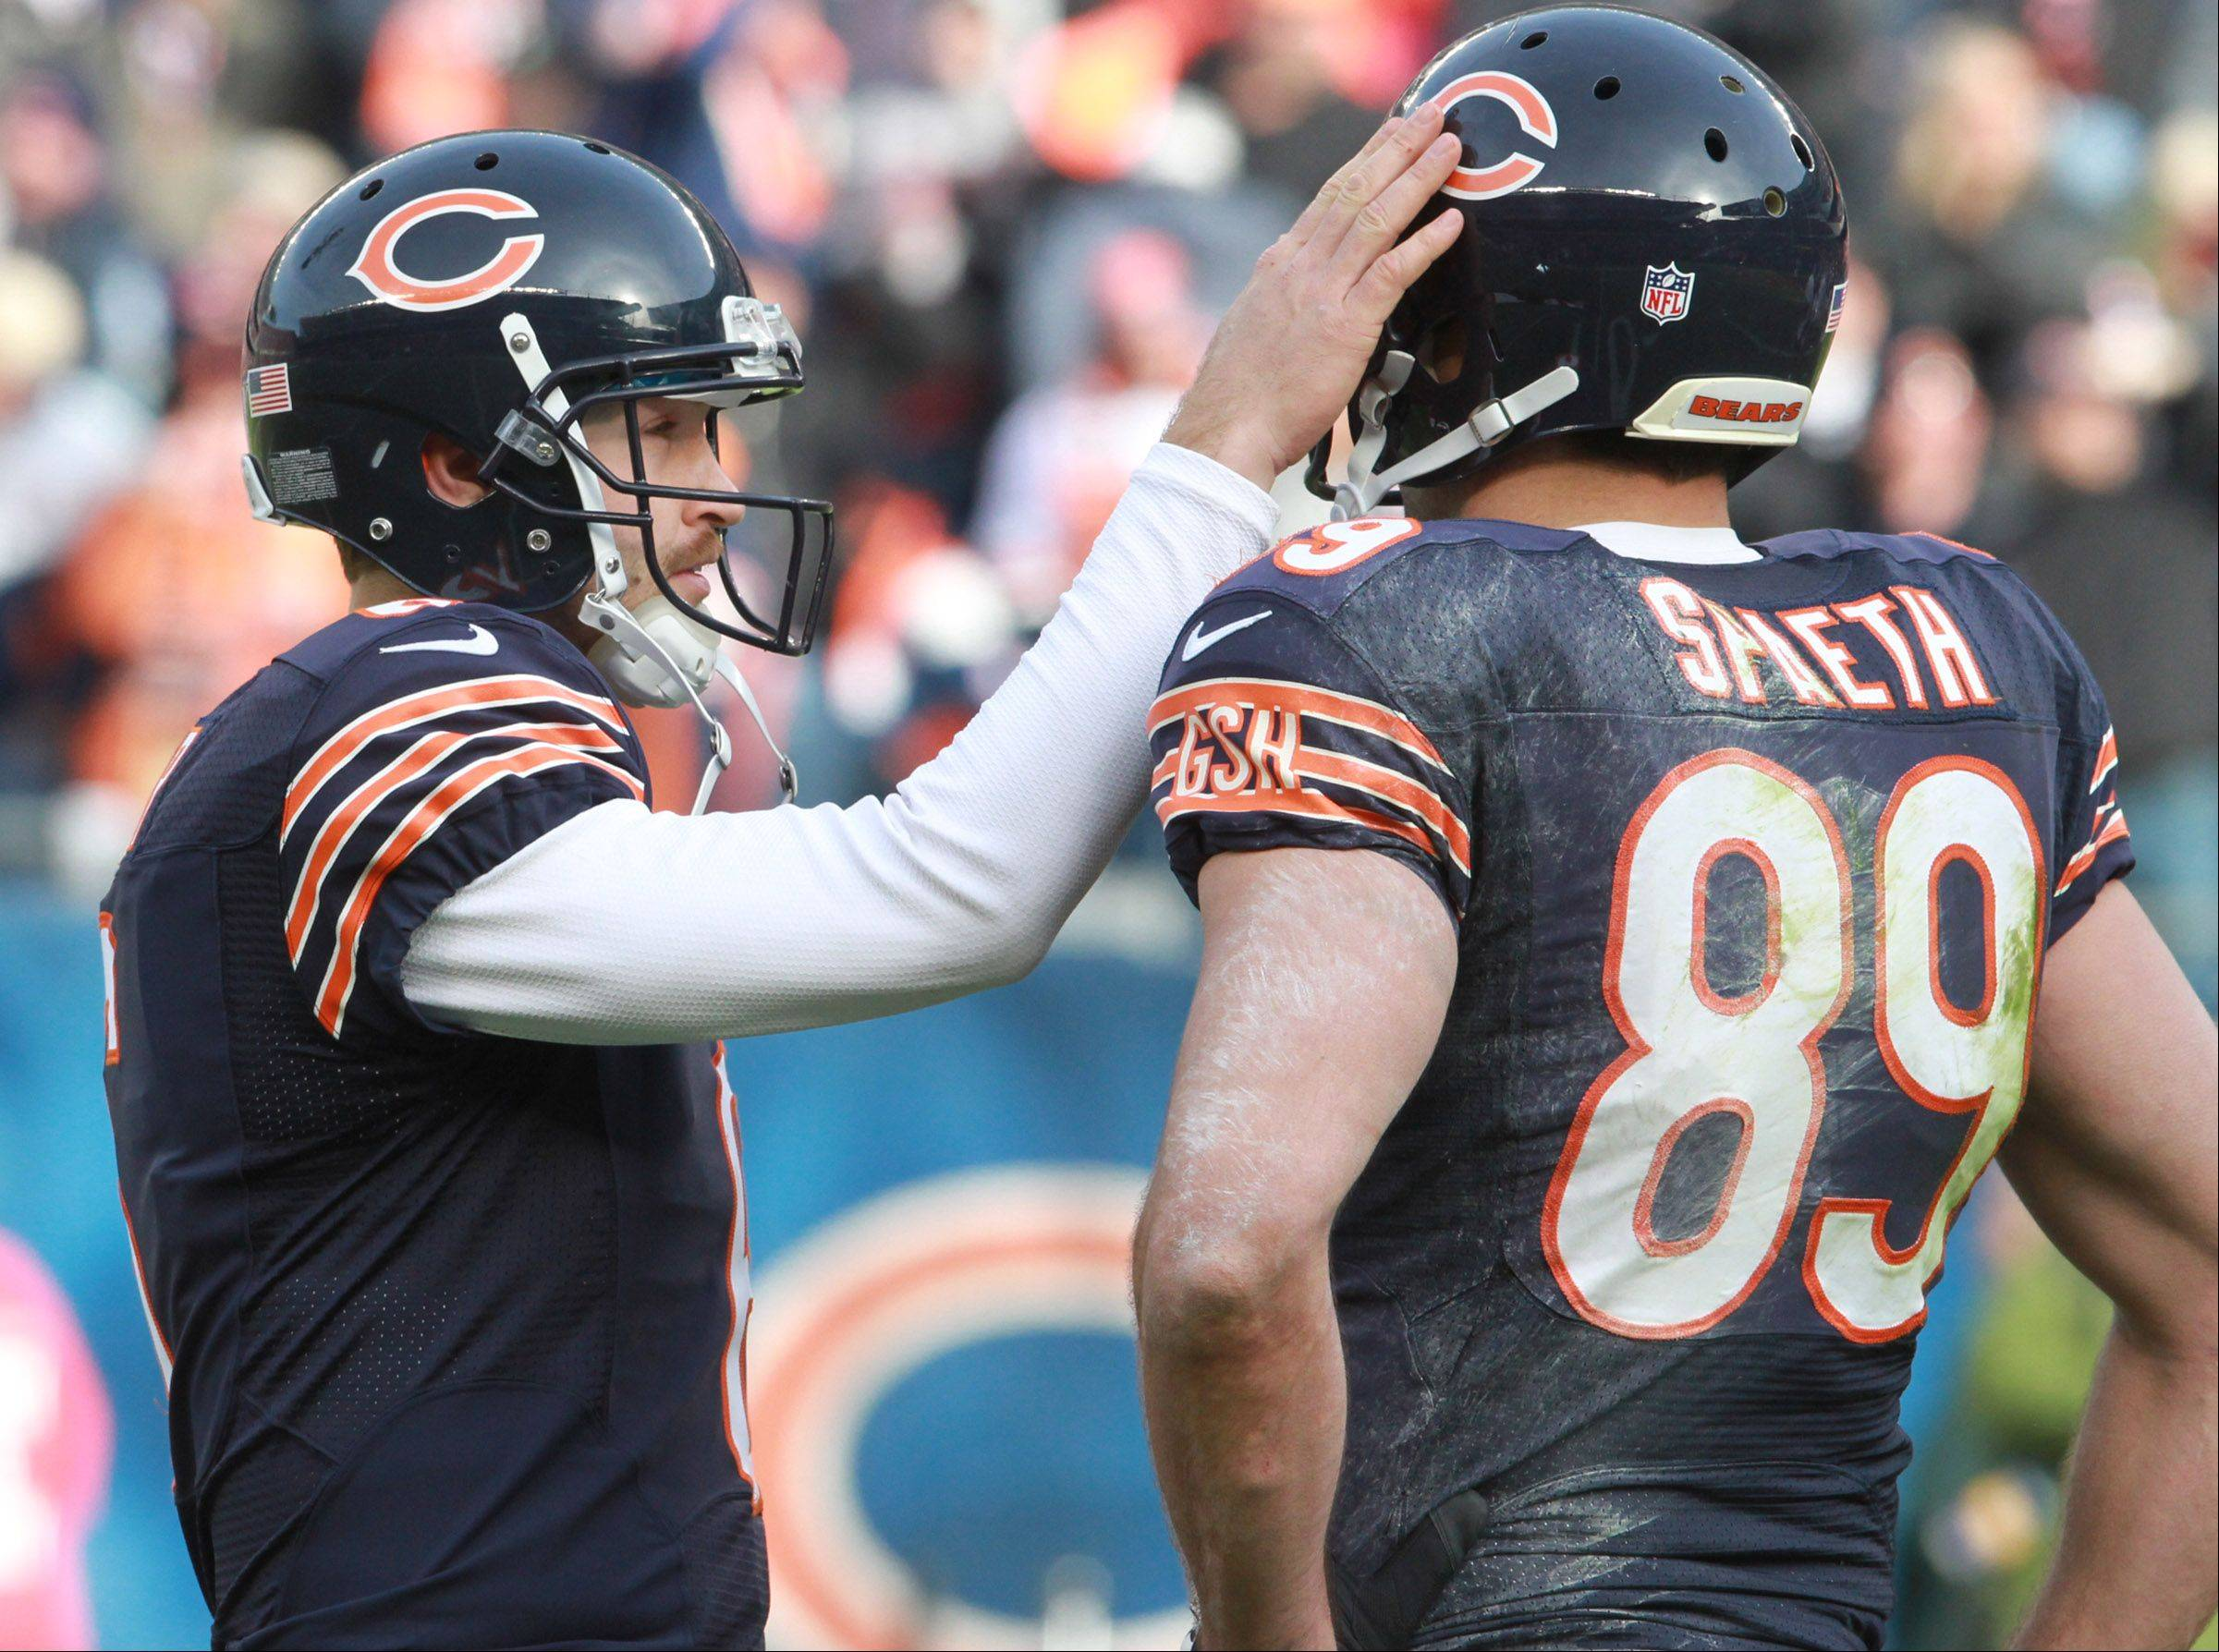 There's no disputing Cutler's effect on Bears